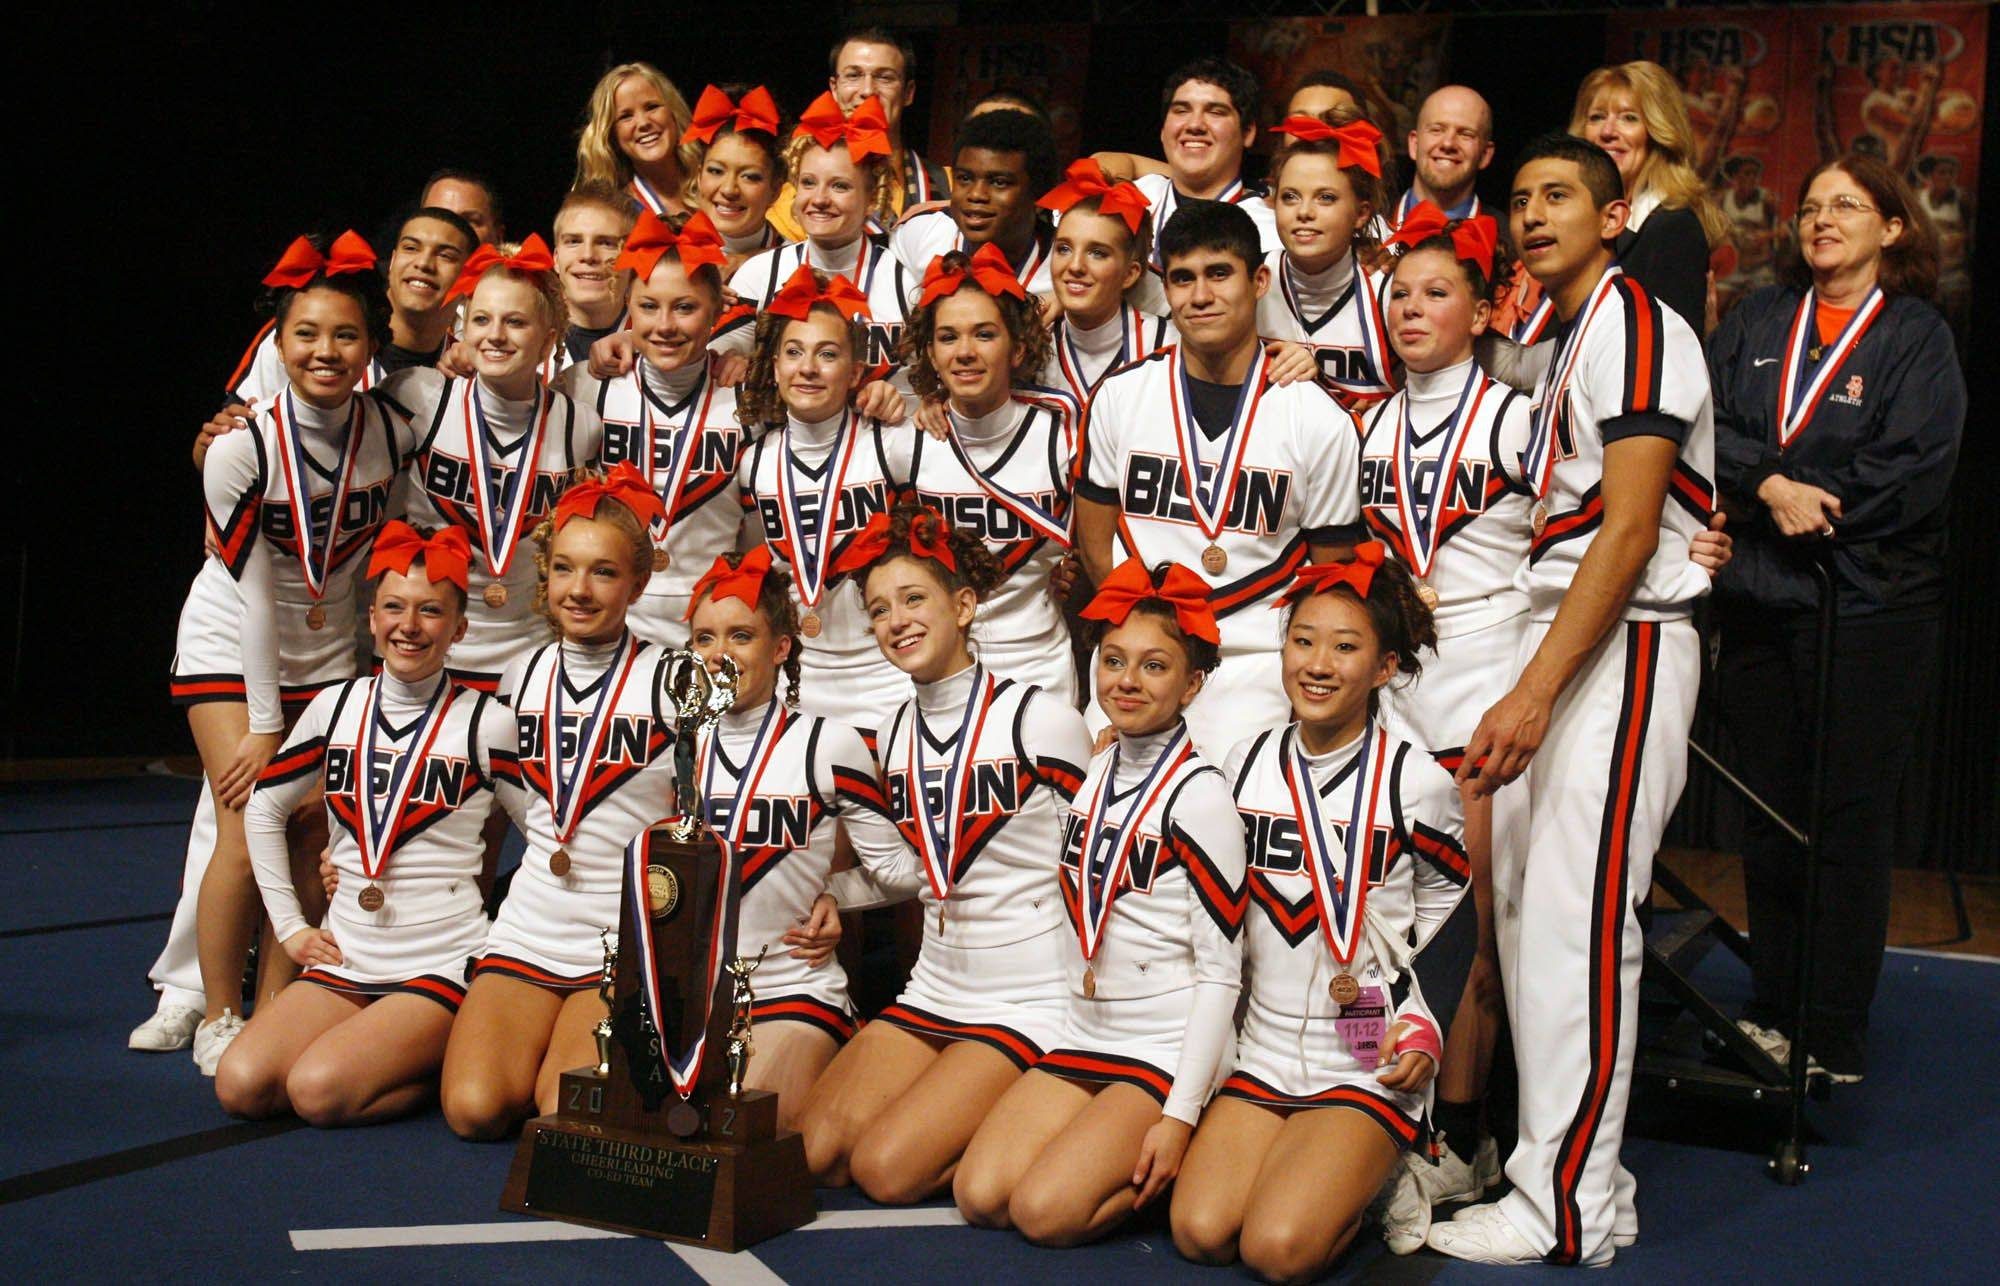 Buffalo Grove after placing 3rd for coed division at IHSA cheerleading state finals at U.S. Cellular Coliseum in Bloomington on Saturday, February 4th.